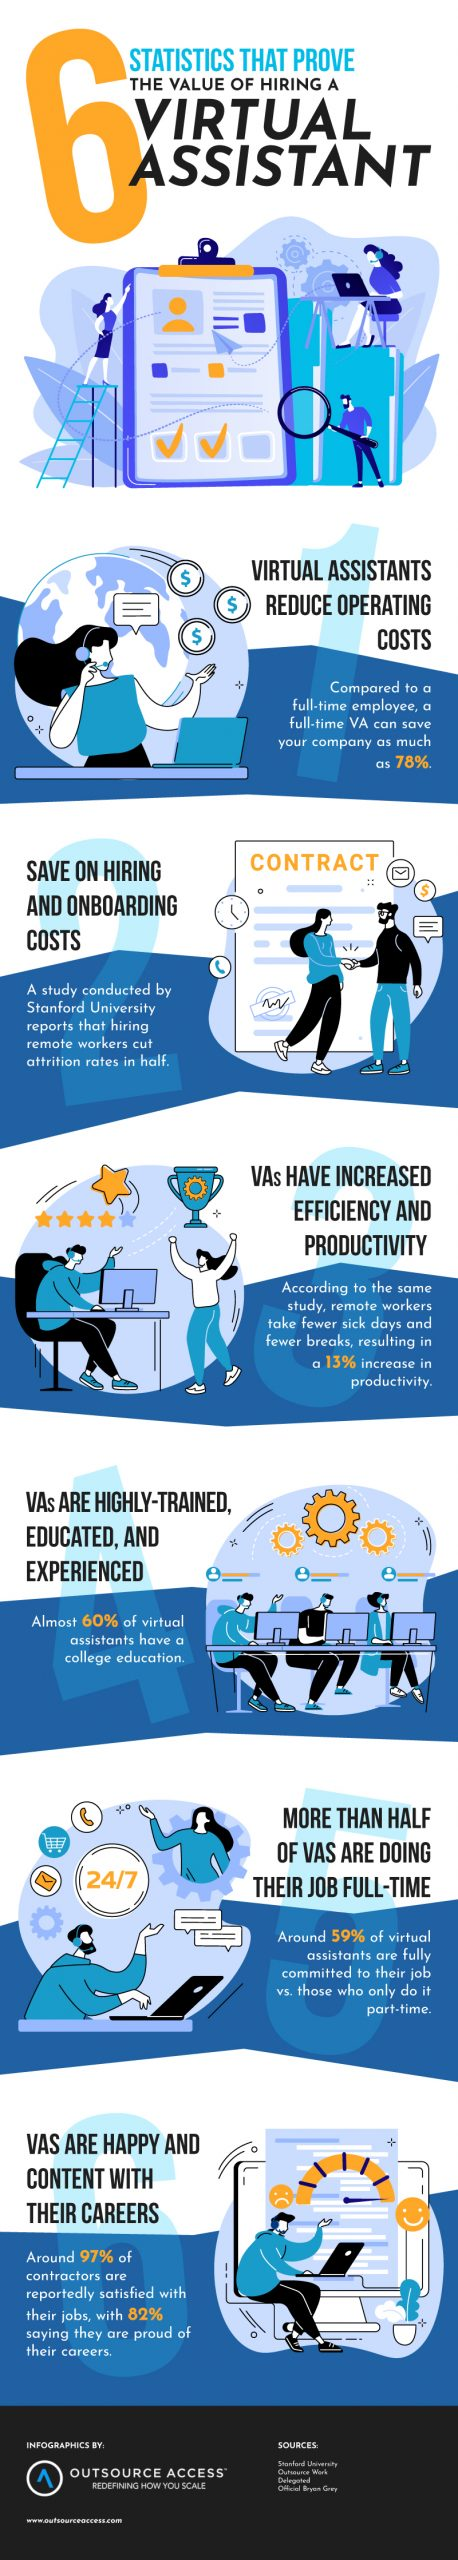 statistics that prove the value of hiring a virtual assistant infographic